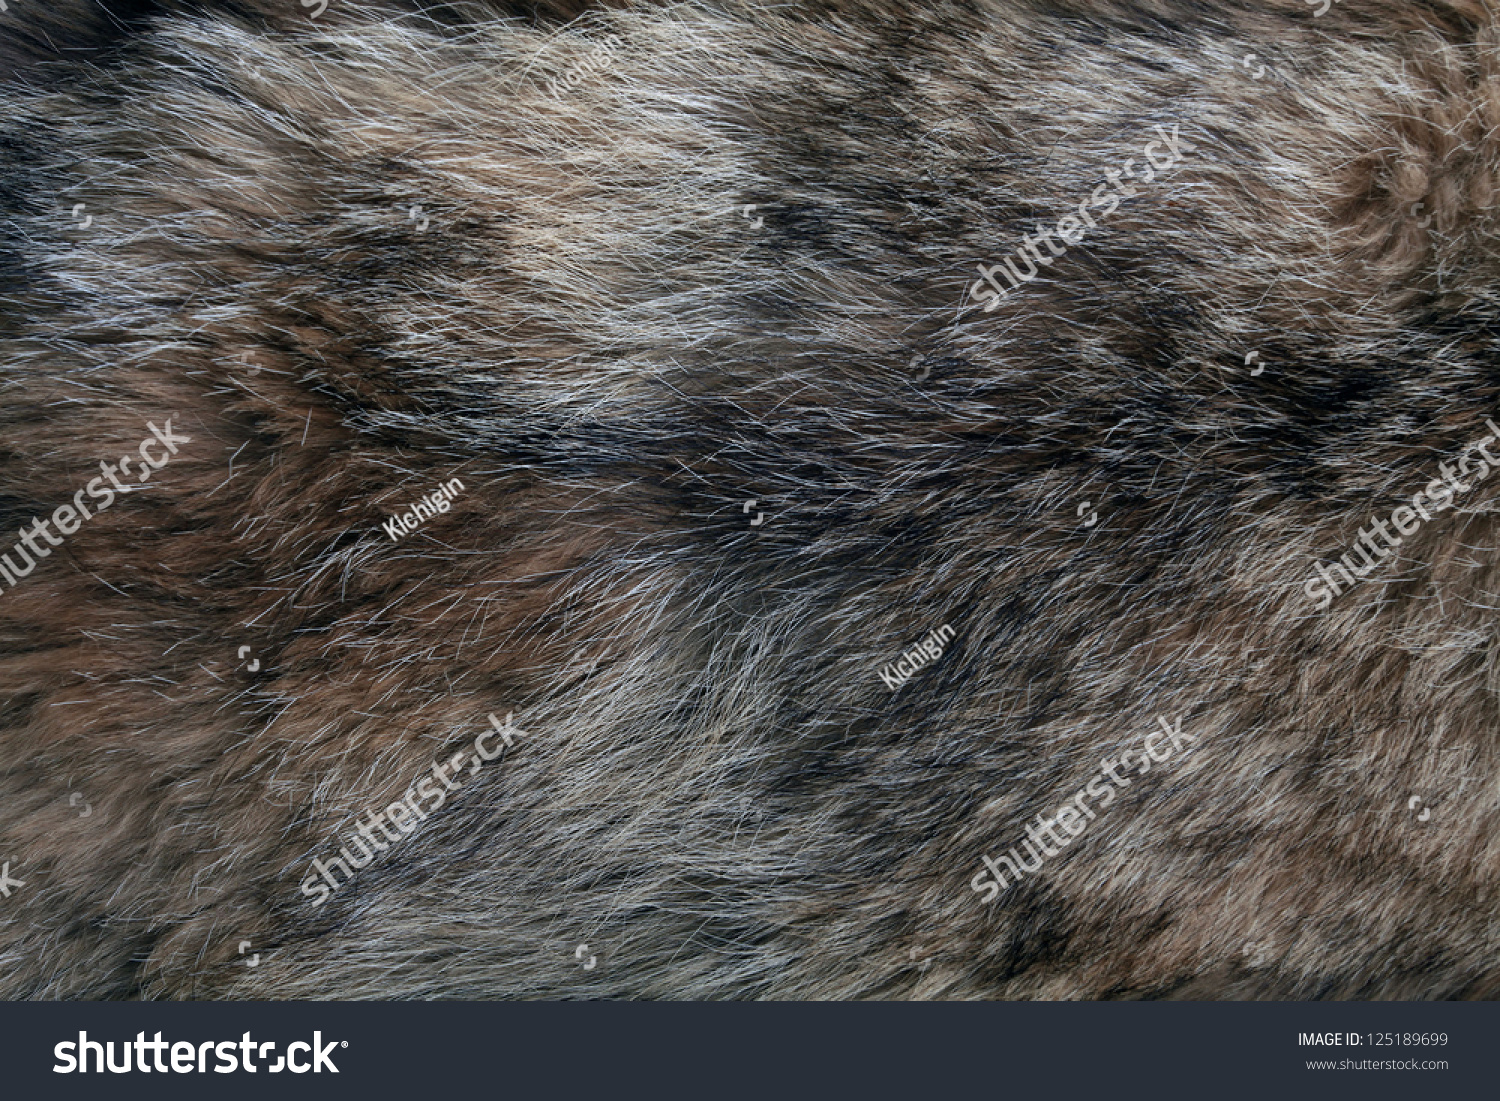 Wolf Fur Texture Of The Gray Wolf Skin Stock Photo ...